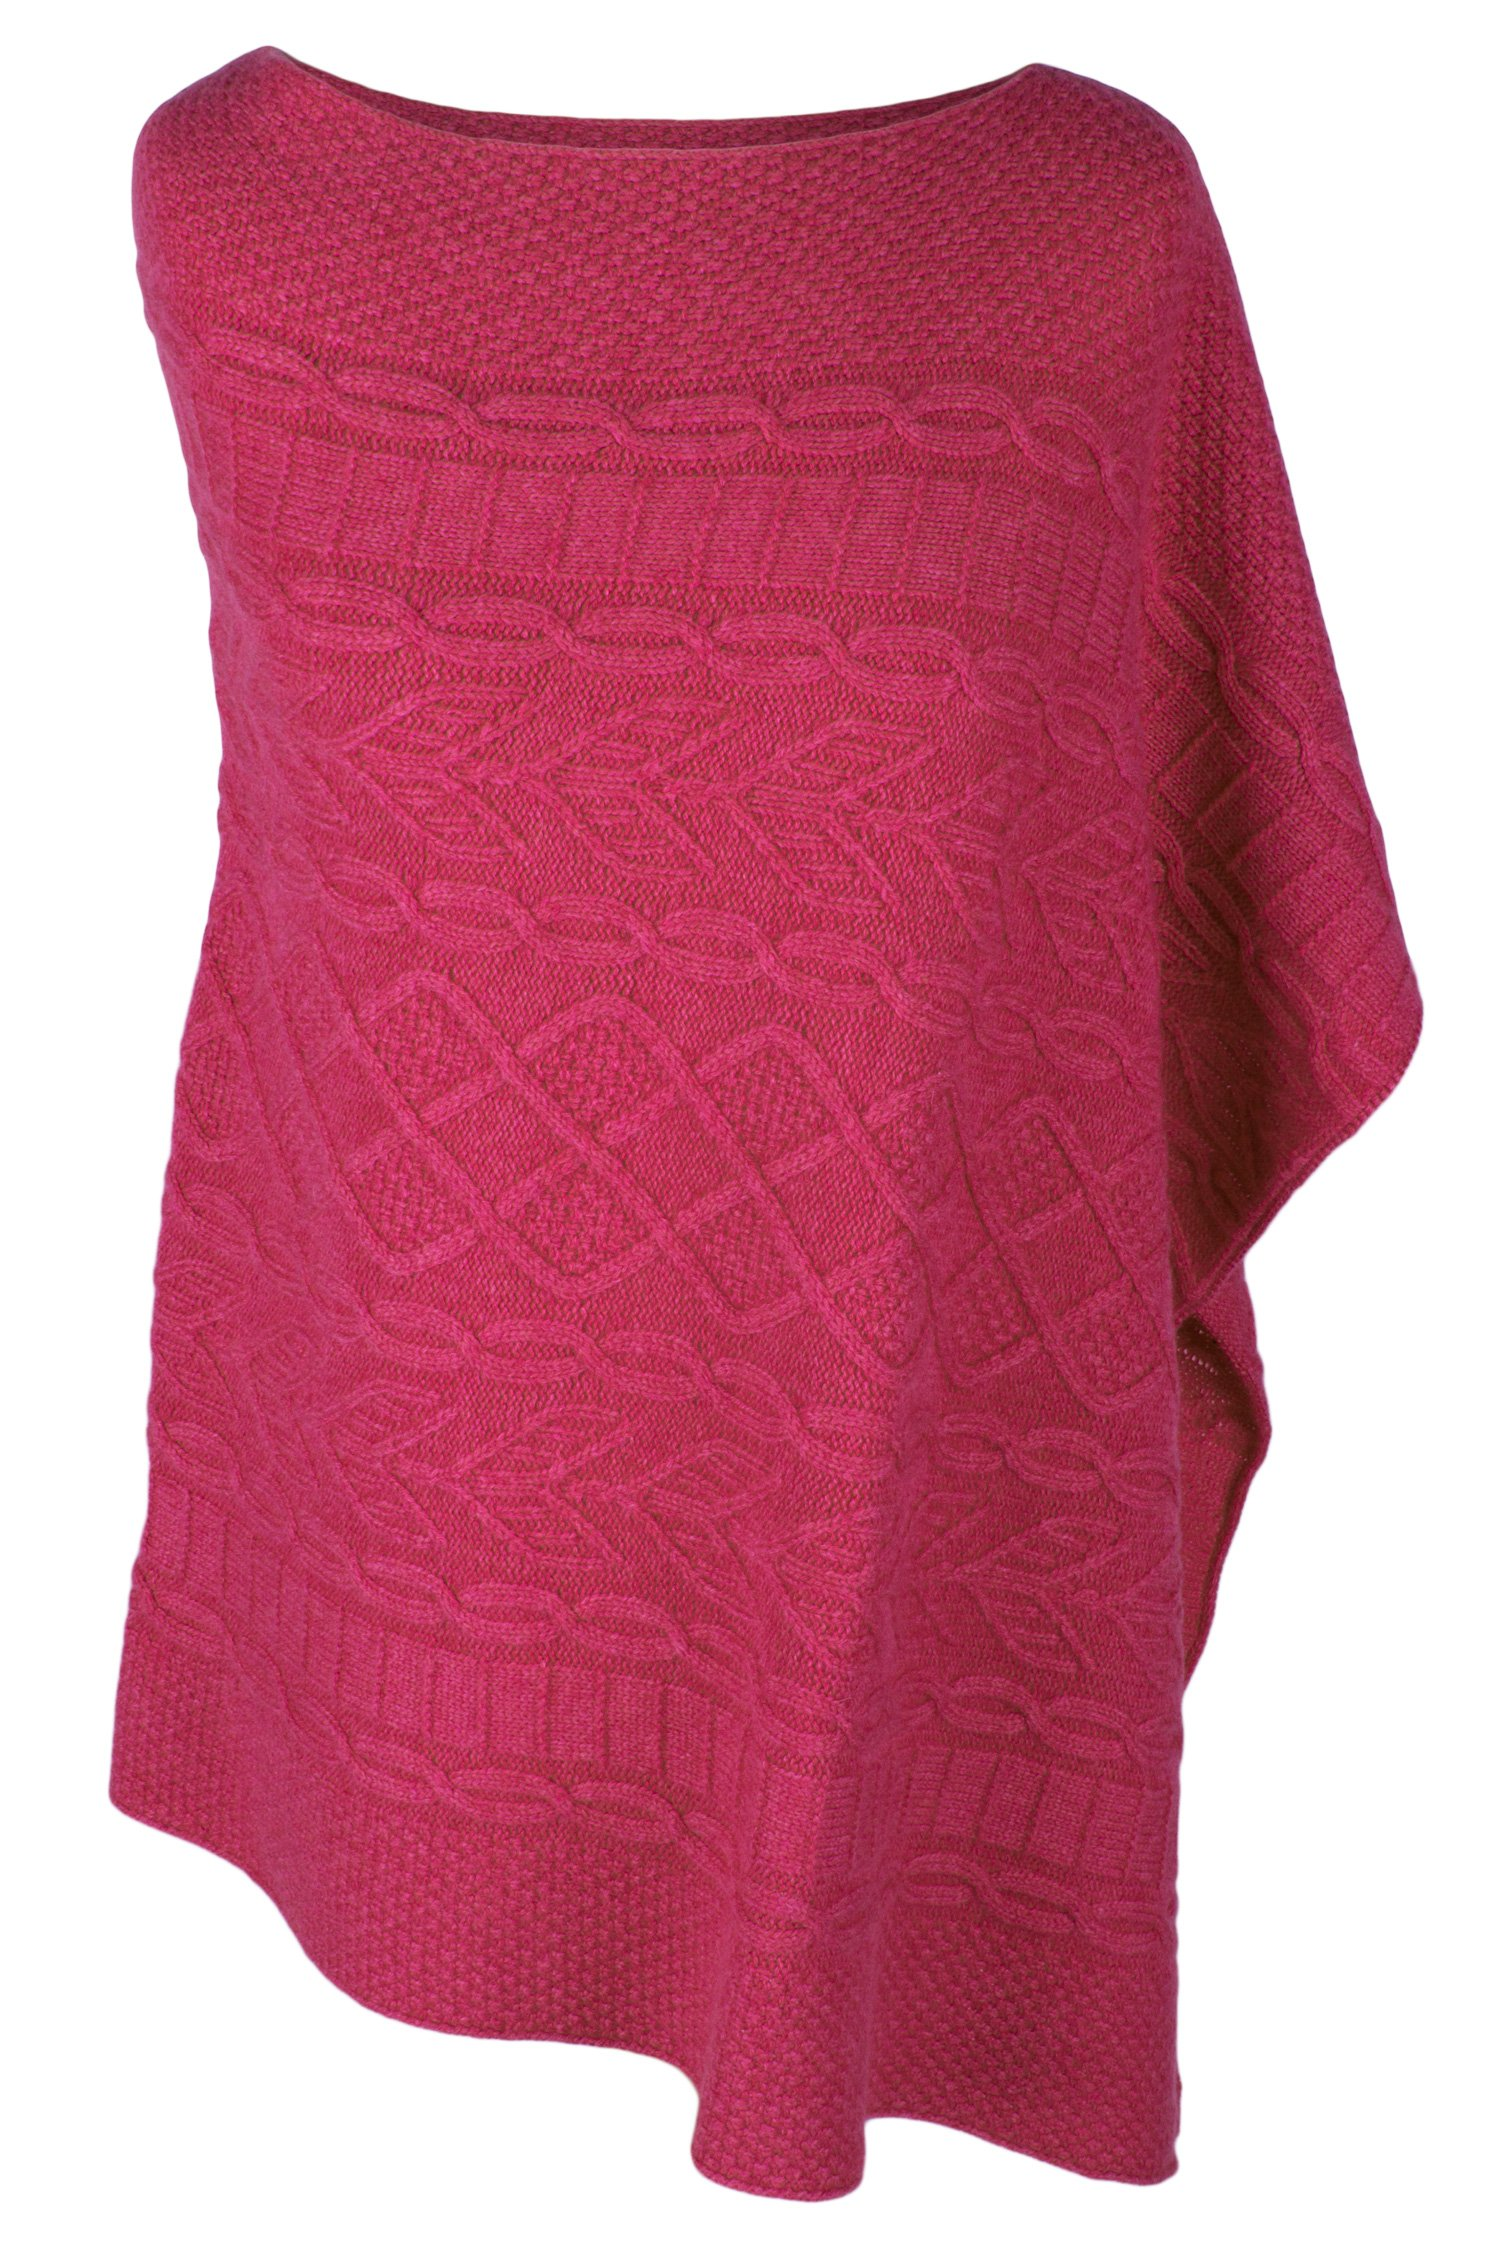 Love Cashmere Women's 100% Cashmere Cable Poncho - Fuchsia Pink - Made In Scotland by Love Cashmere (Image #1)